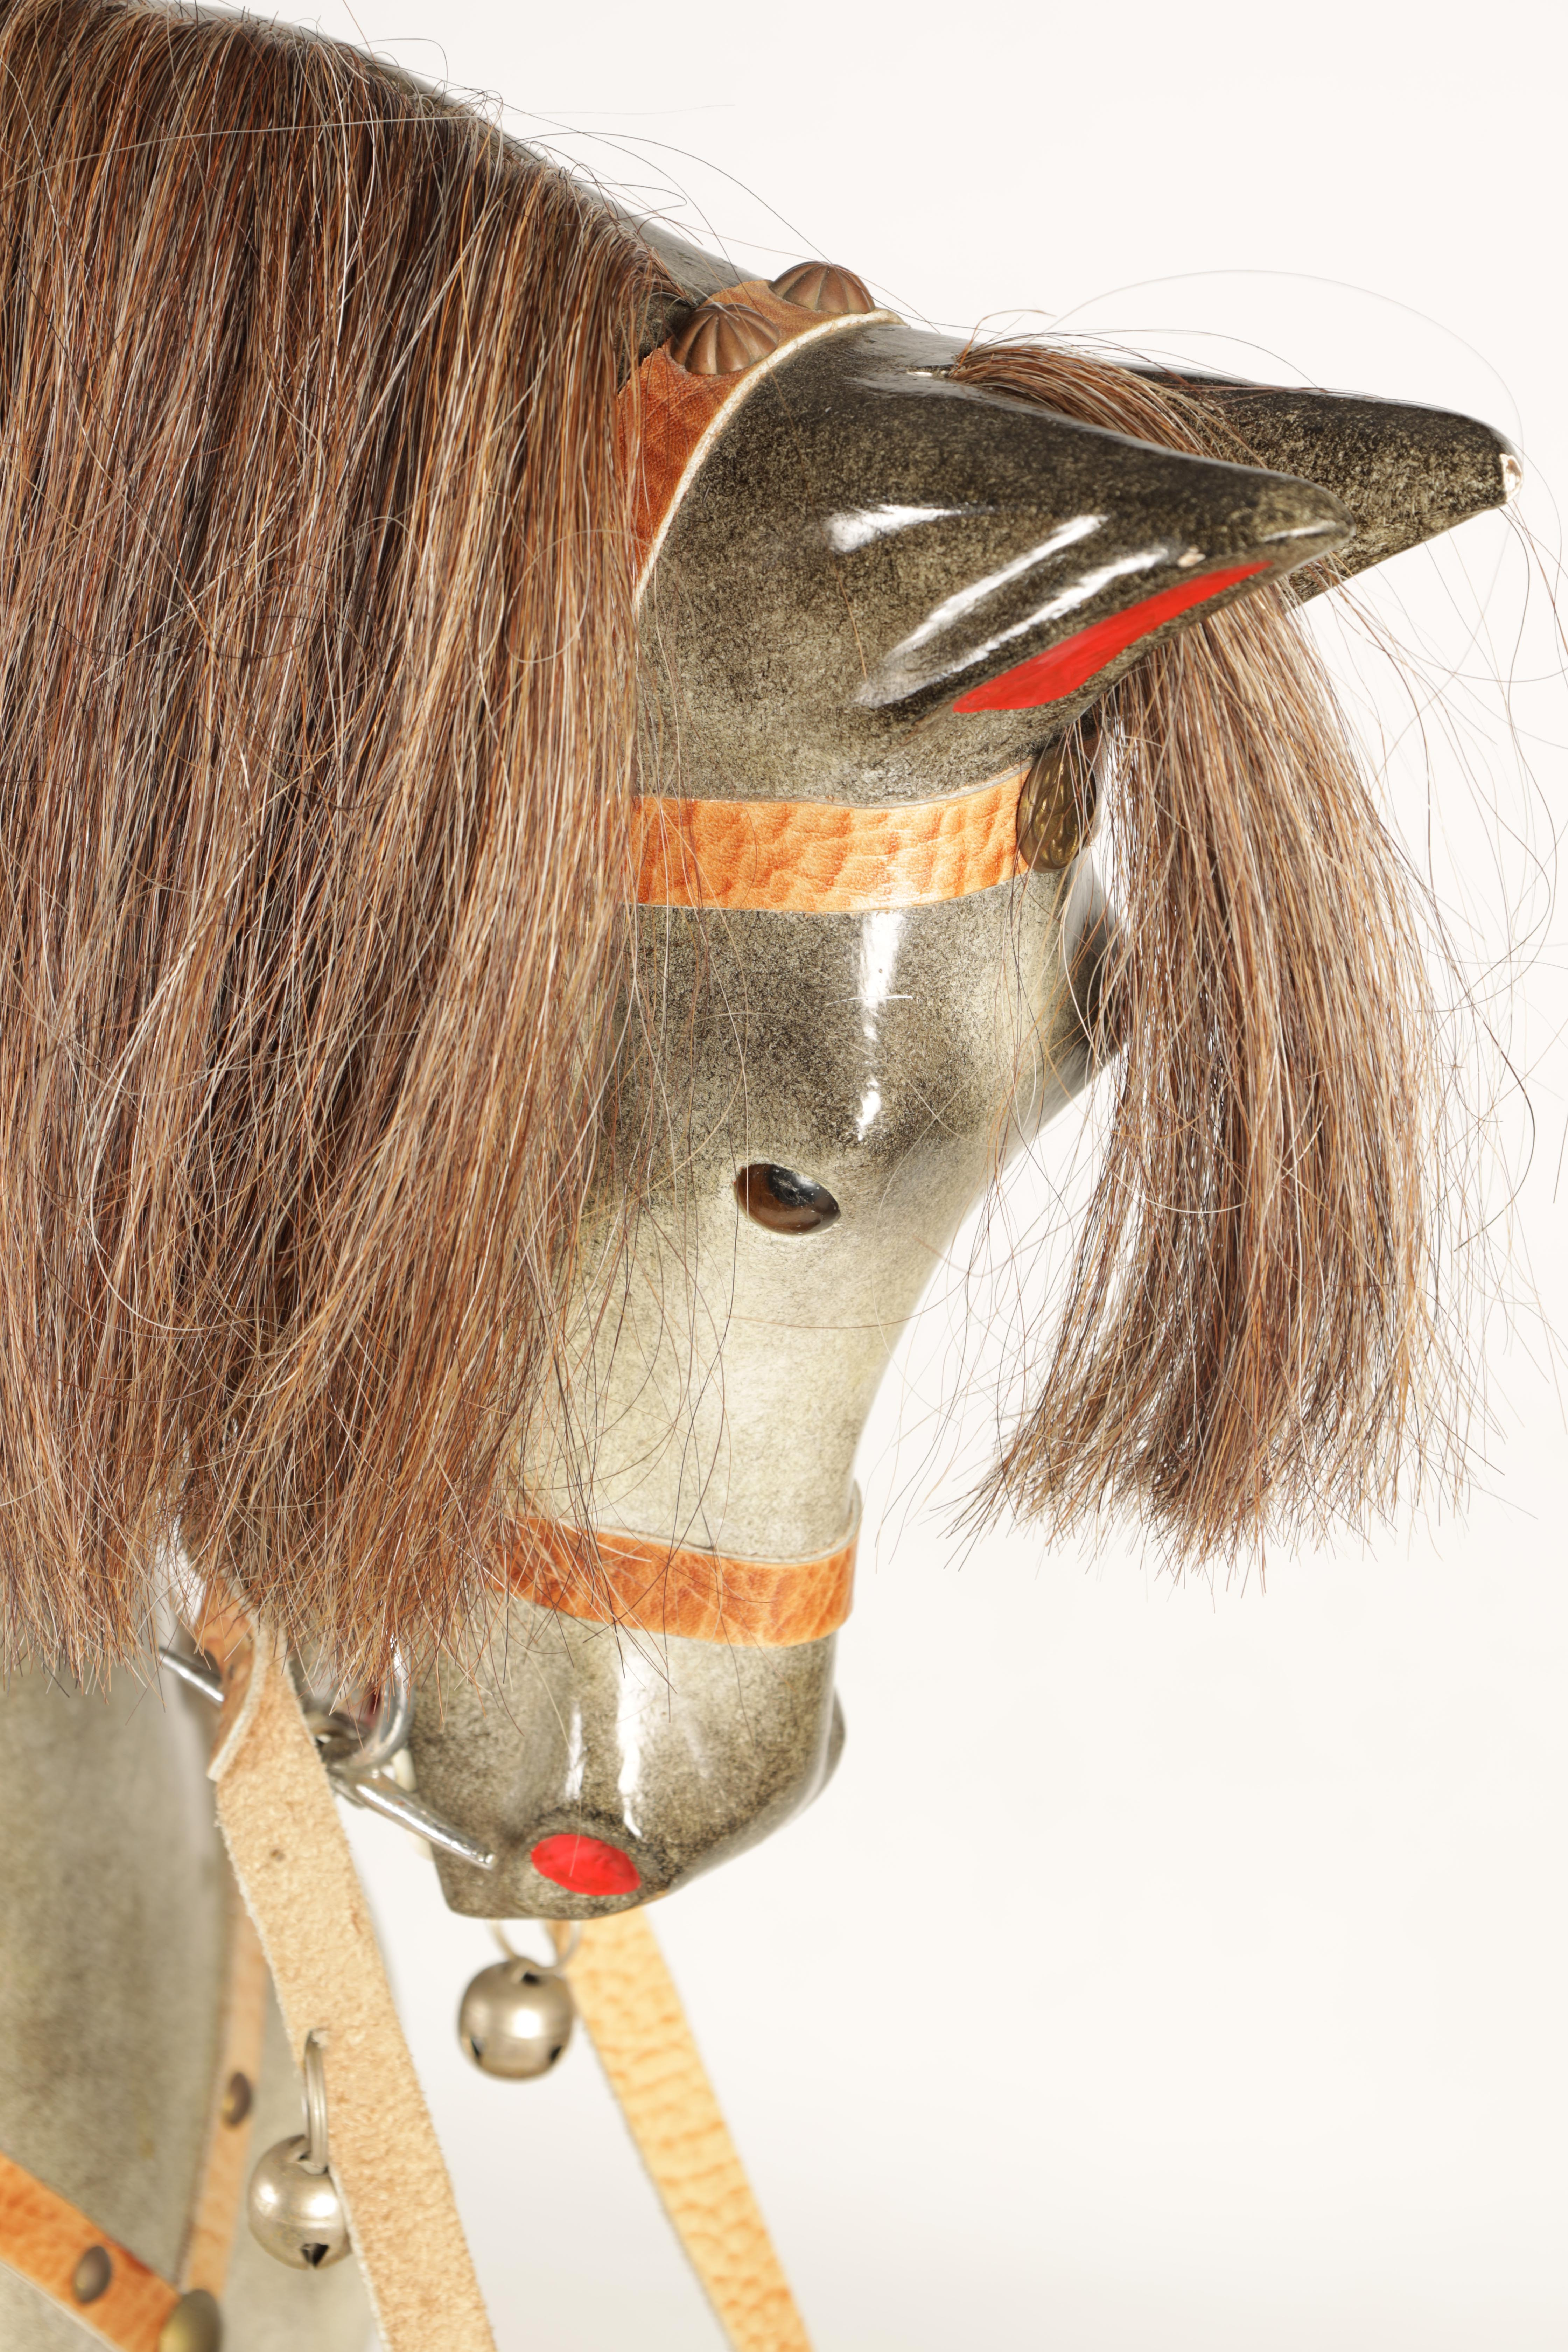 A 20TH CENTURY DAPPLE GREY PAINTED WOODEN ROCKING HORSE with leather seat and bridle 138cm wide - Image 4 of 8